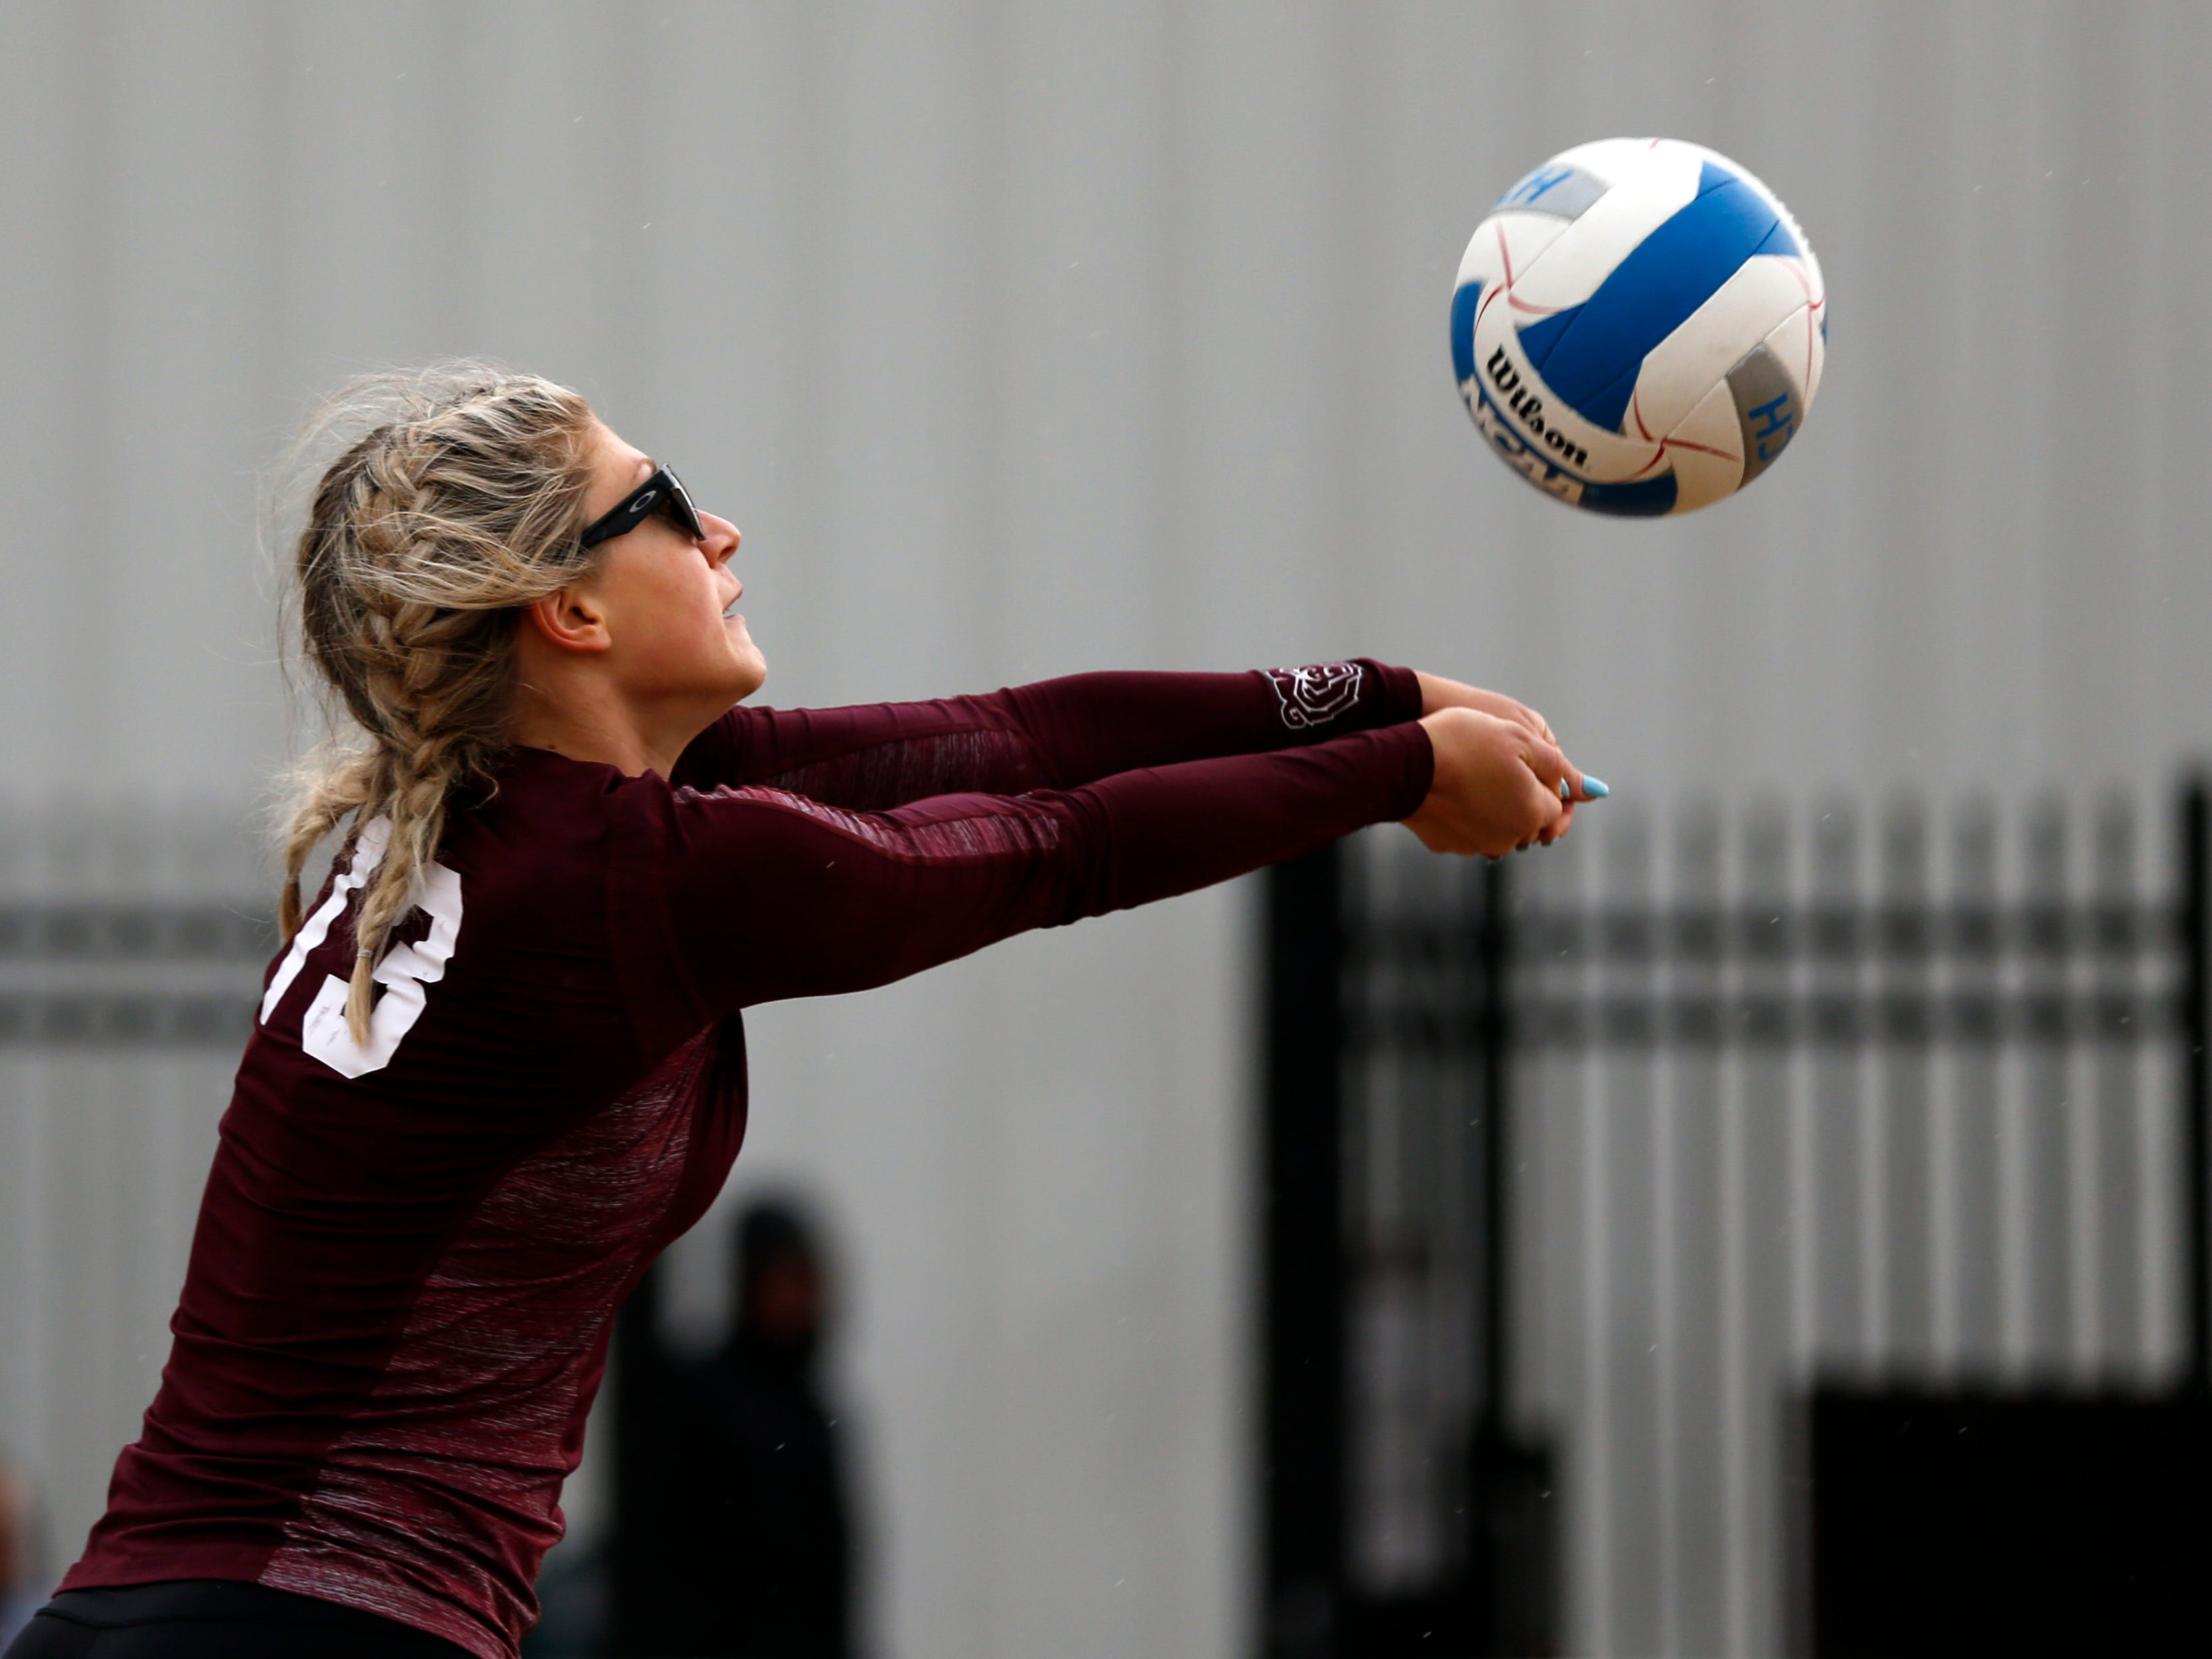 The Missouri State Bears beach volleyball team takes on the Missouri Baptist Spartans at the Betty & Bobby Allison Sand Volleyball Courts on Saturday, March 23, 2019.